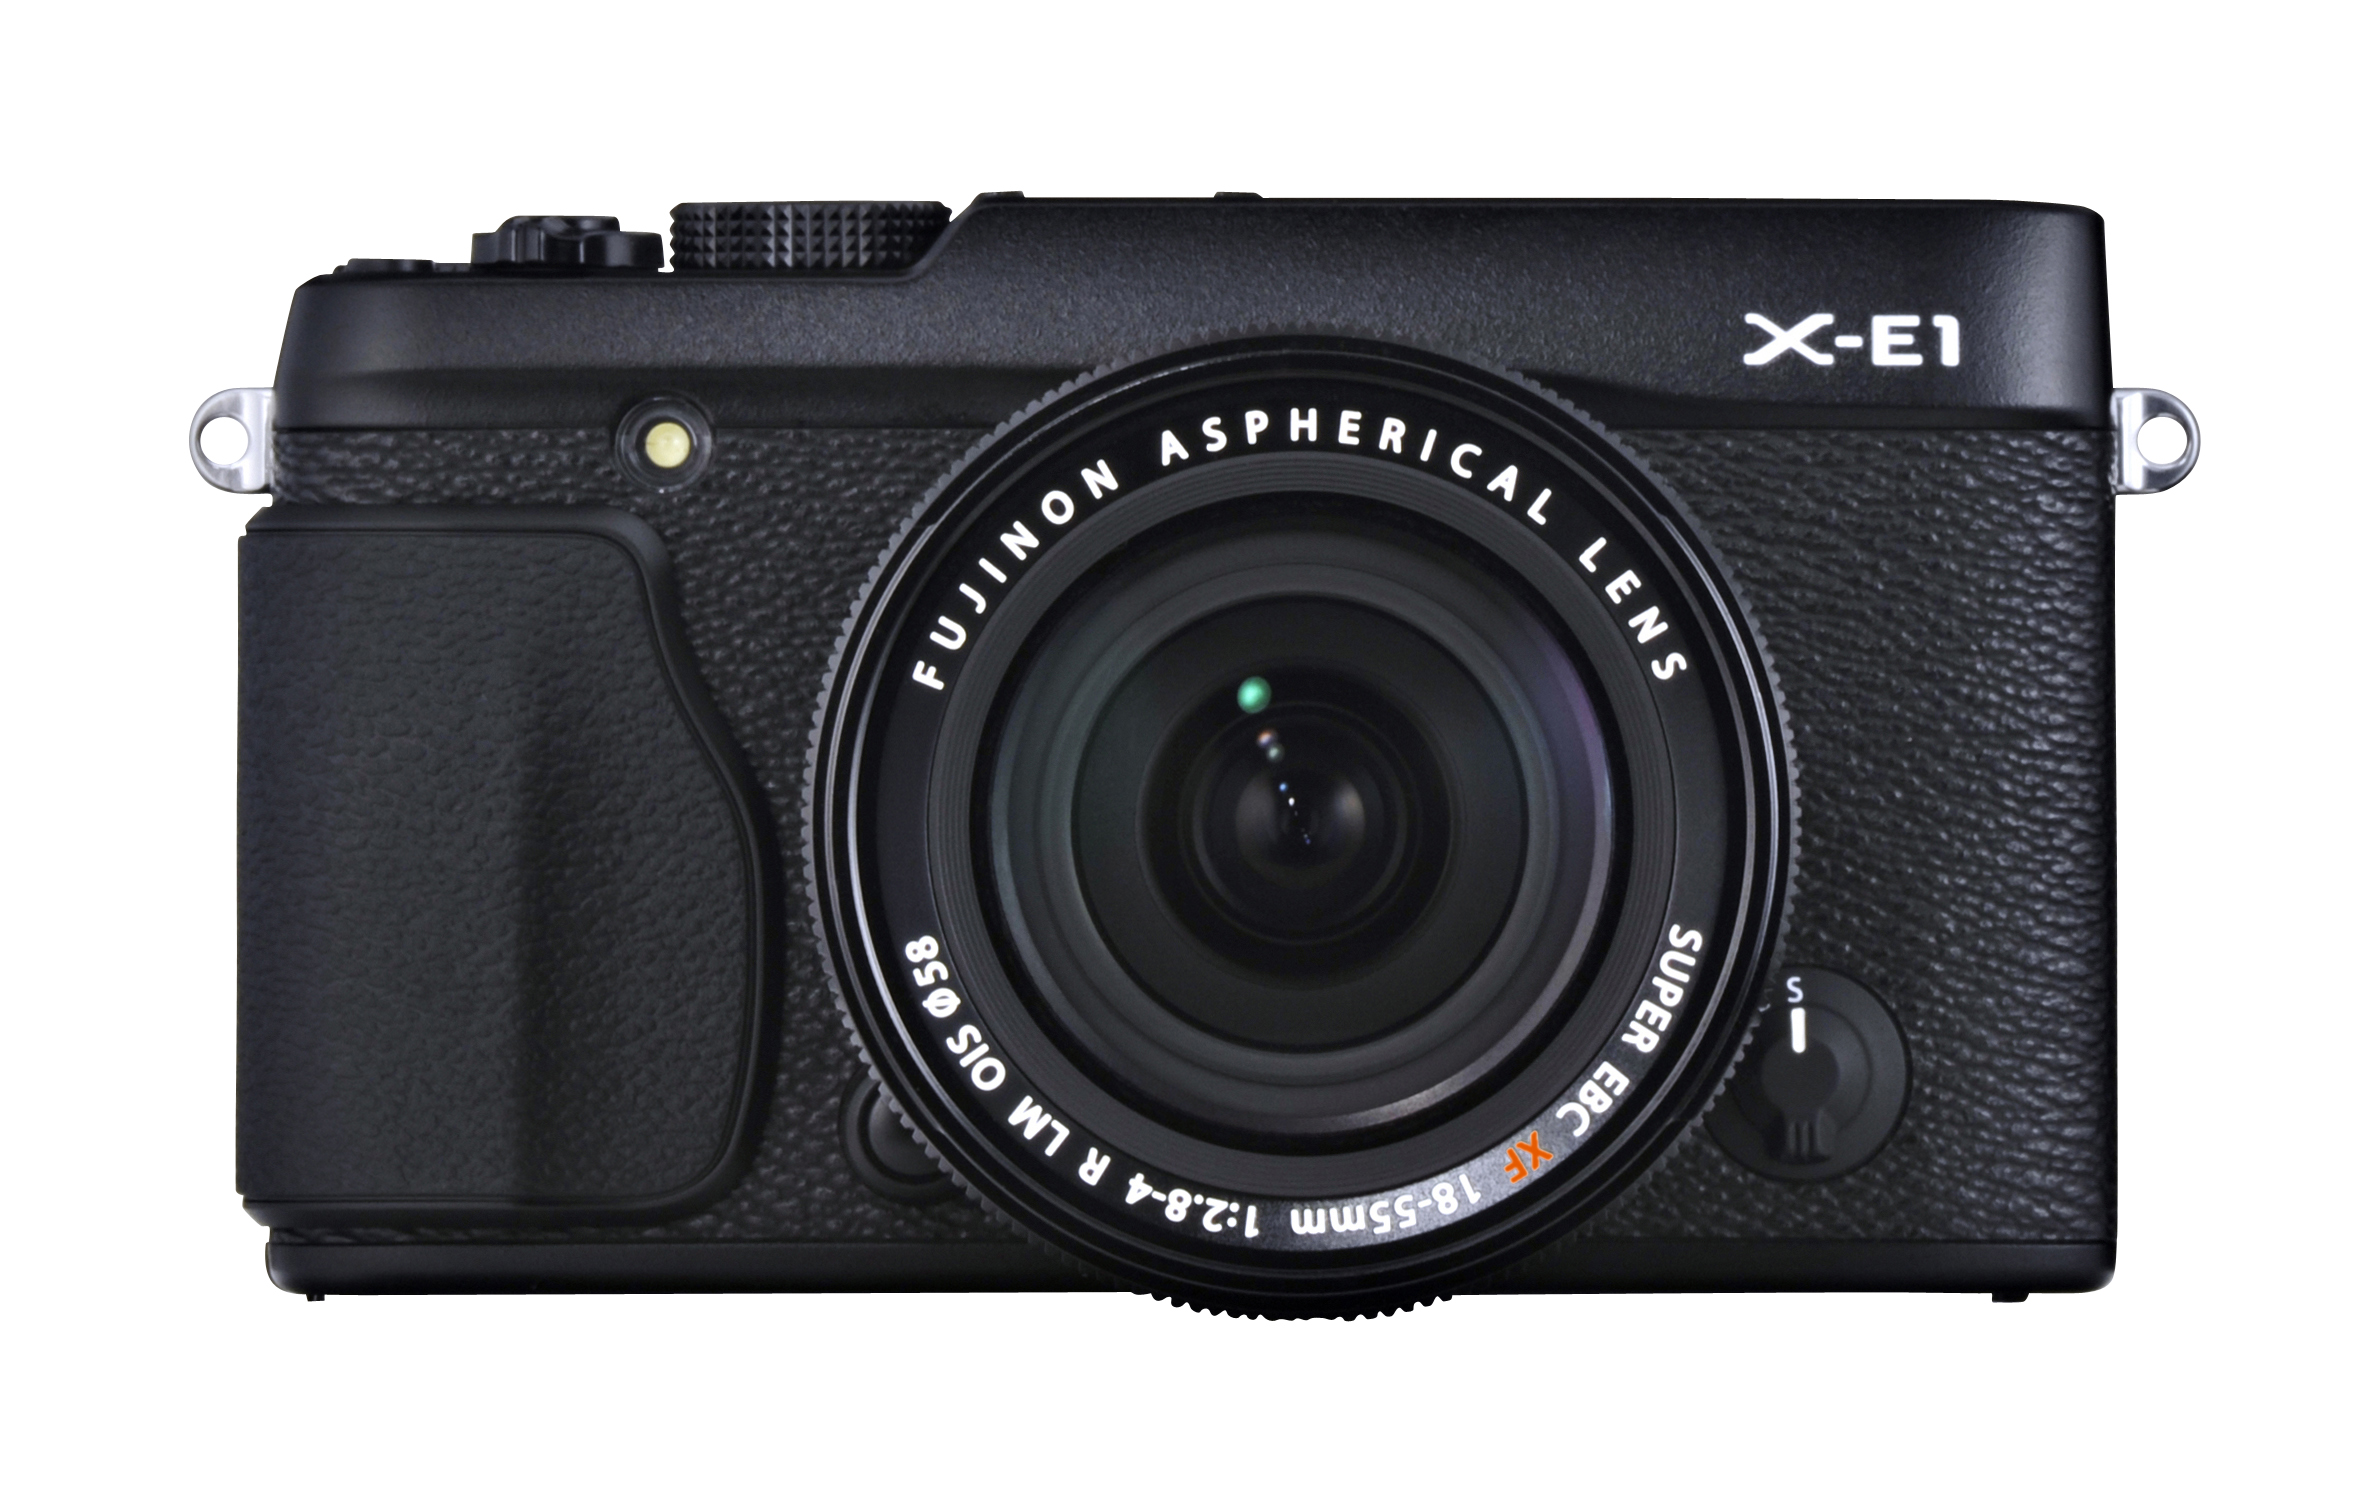 its X series with a new interchangeable lens model, the X-E1